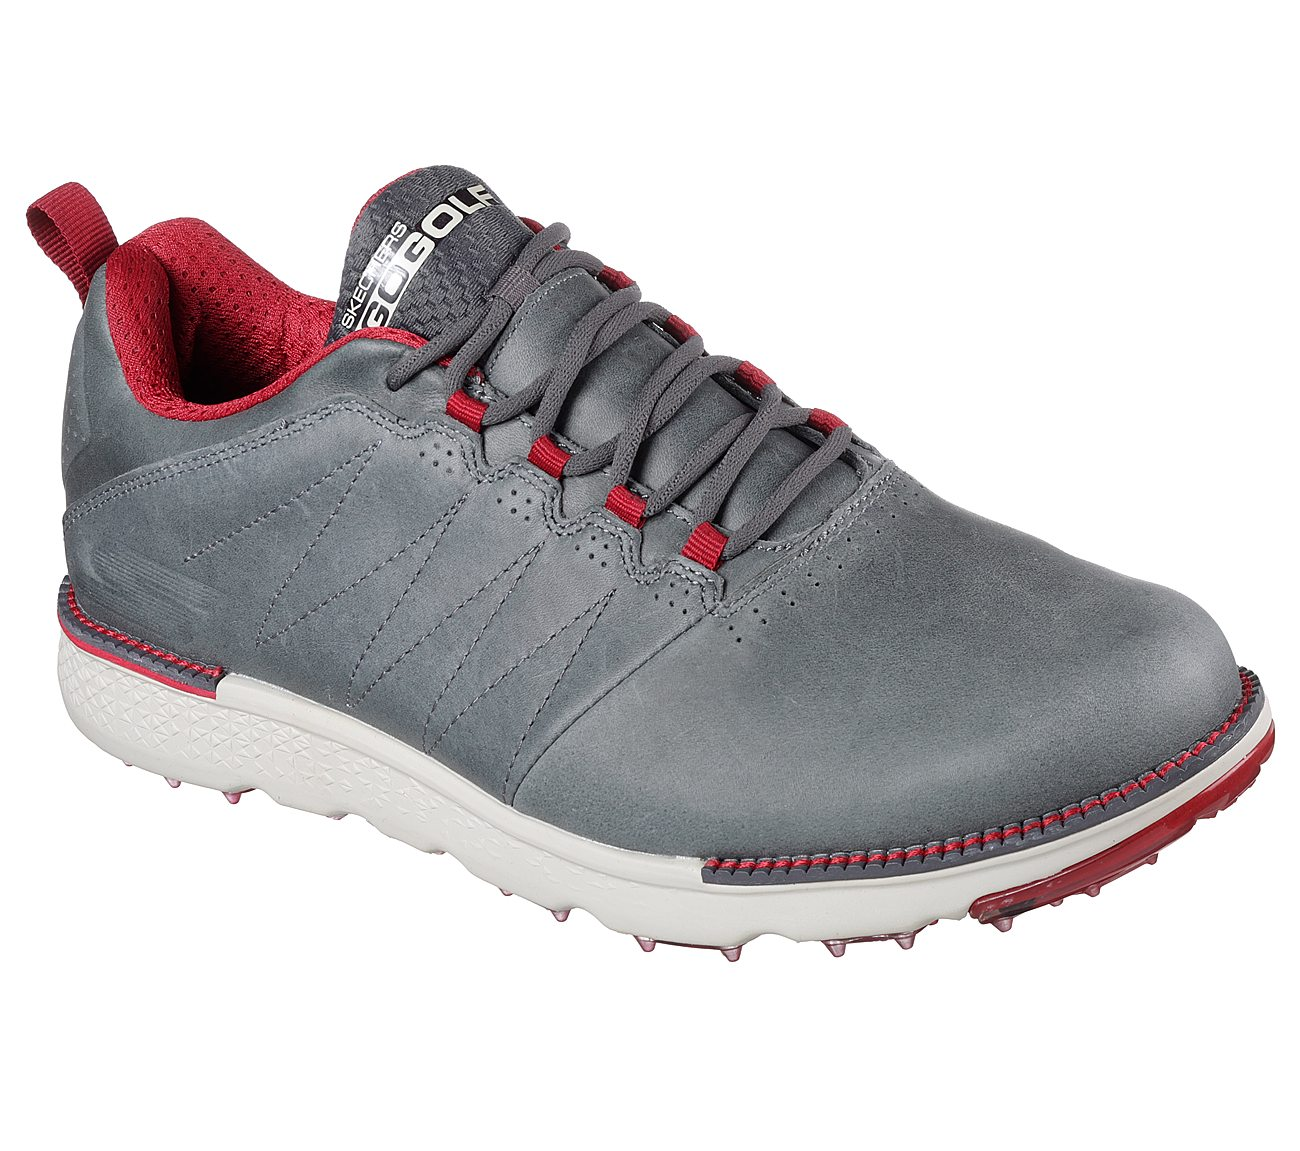 3590cfb9d7e0 Buy SKECHERS Skechers GO GOLF Elite V.3 - LX Skechers GO GOLF Shoes ...